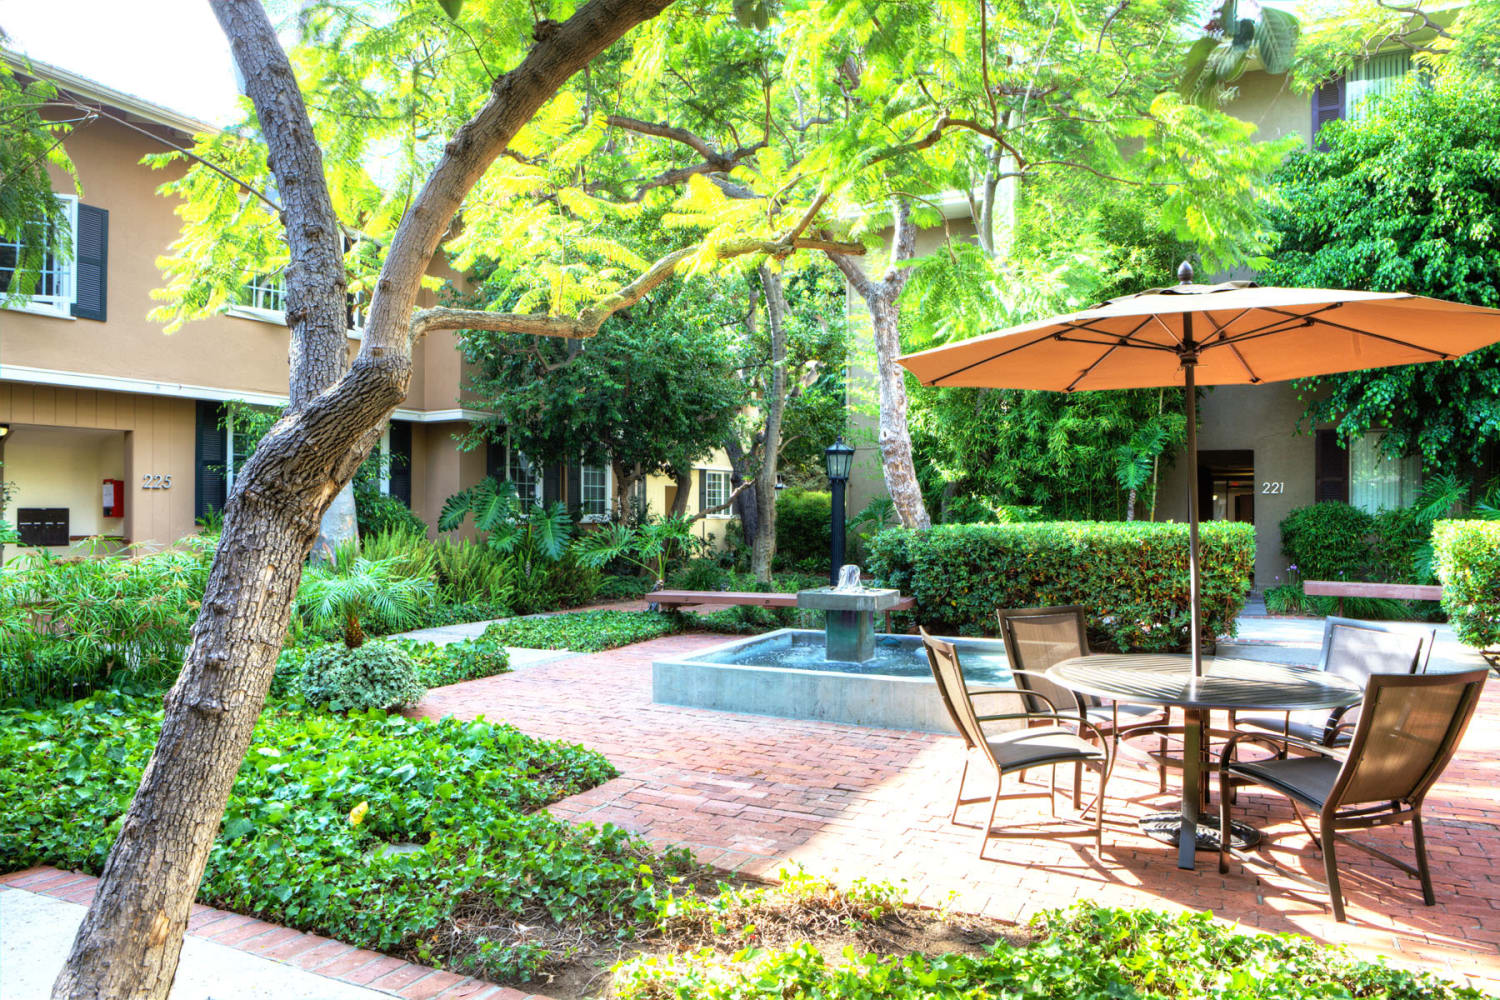 Shaded seating and lush landscaping at one of the courtyards at Sunset Barrington Gardens in Los Angeles, California